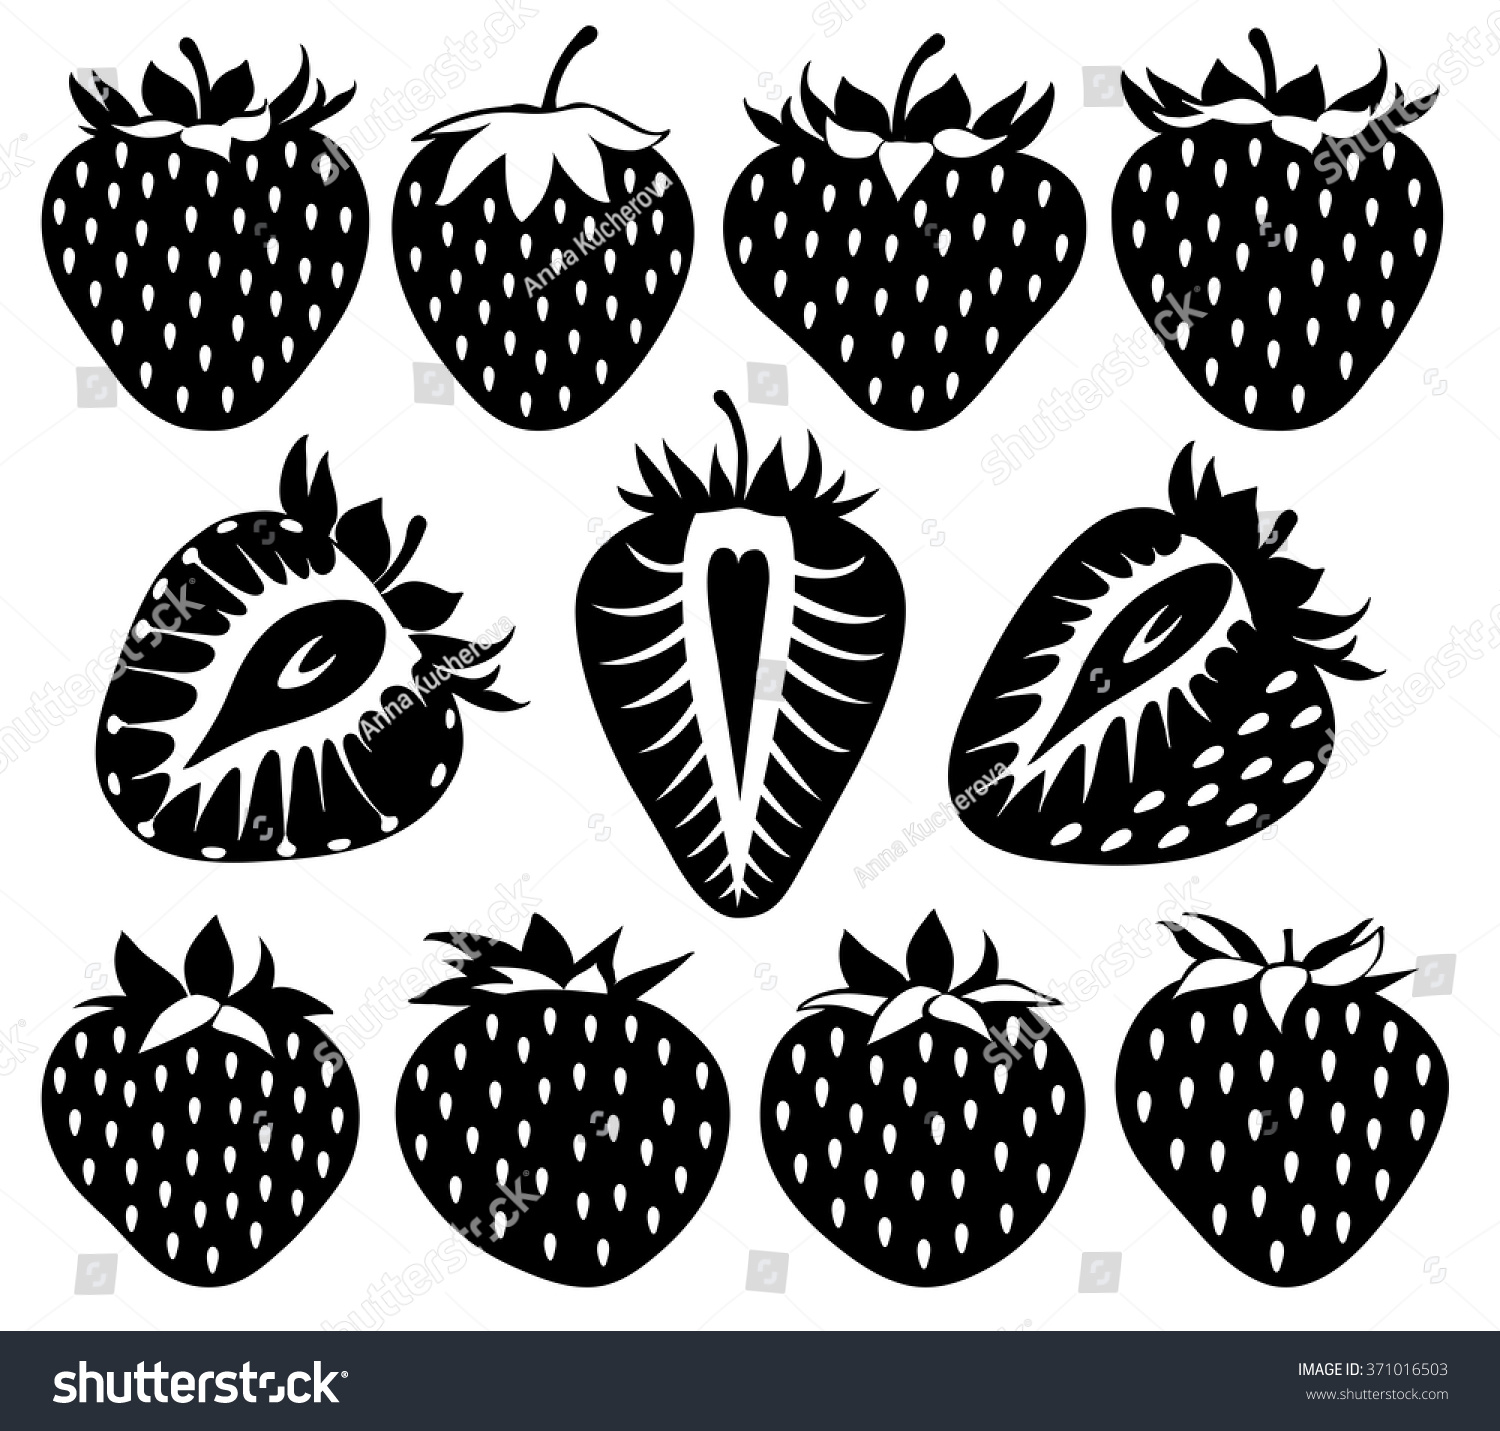 Vector Black White Strawberries Silhouettes Strawberry Stock ... for Clipart Strawberry Black And White  585eri